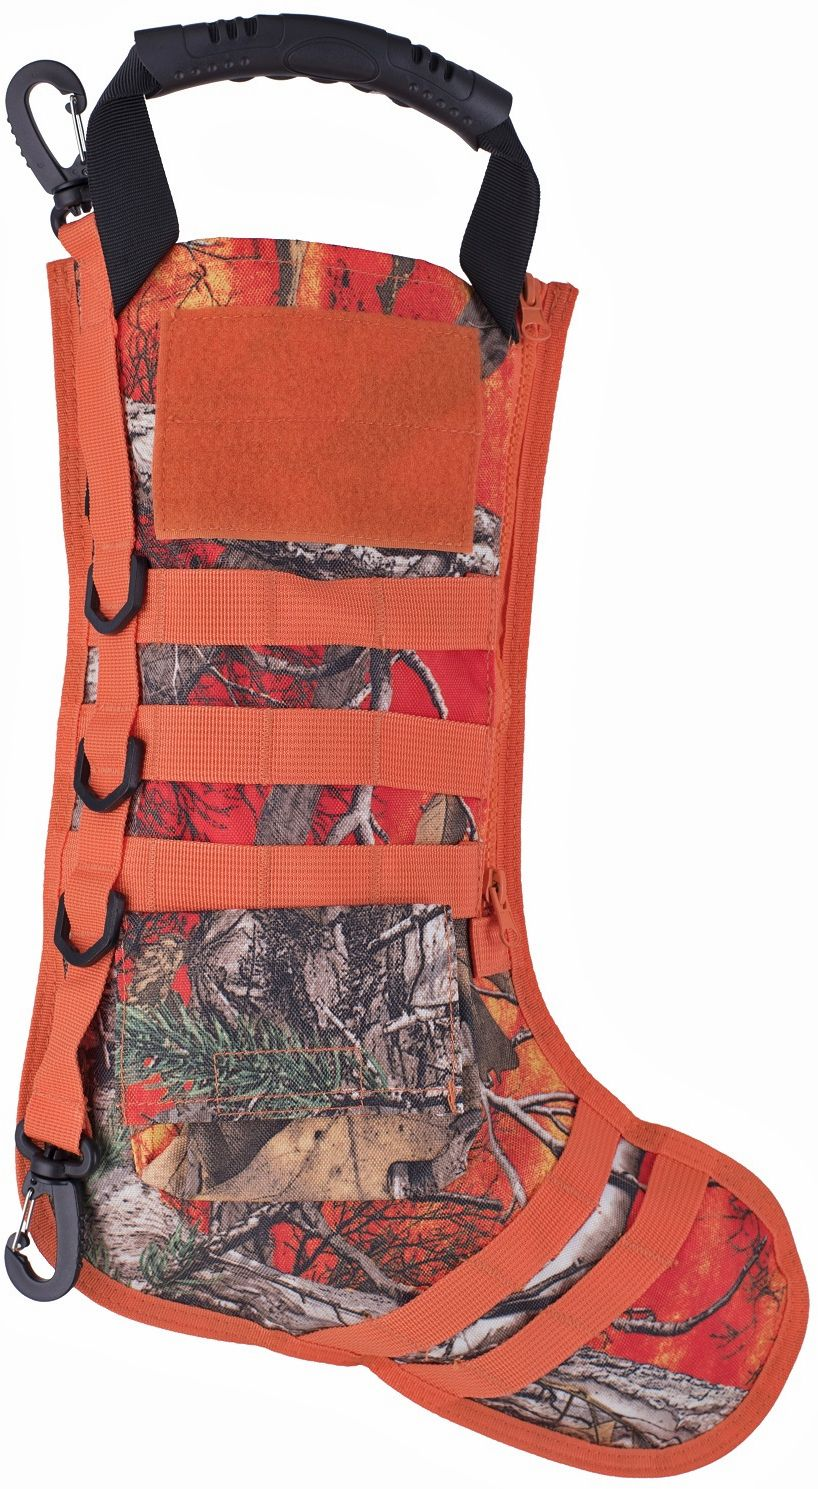 GenPro RuckUp Blaze Orange Camo Tactical Christmas Stocking with MOLLE Attachment